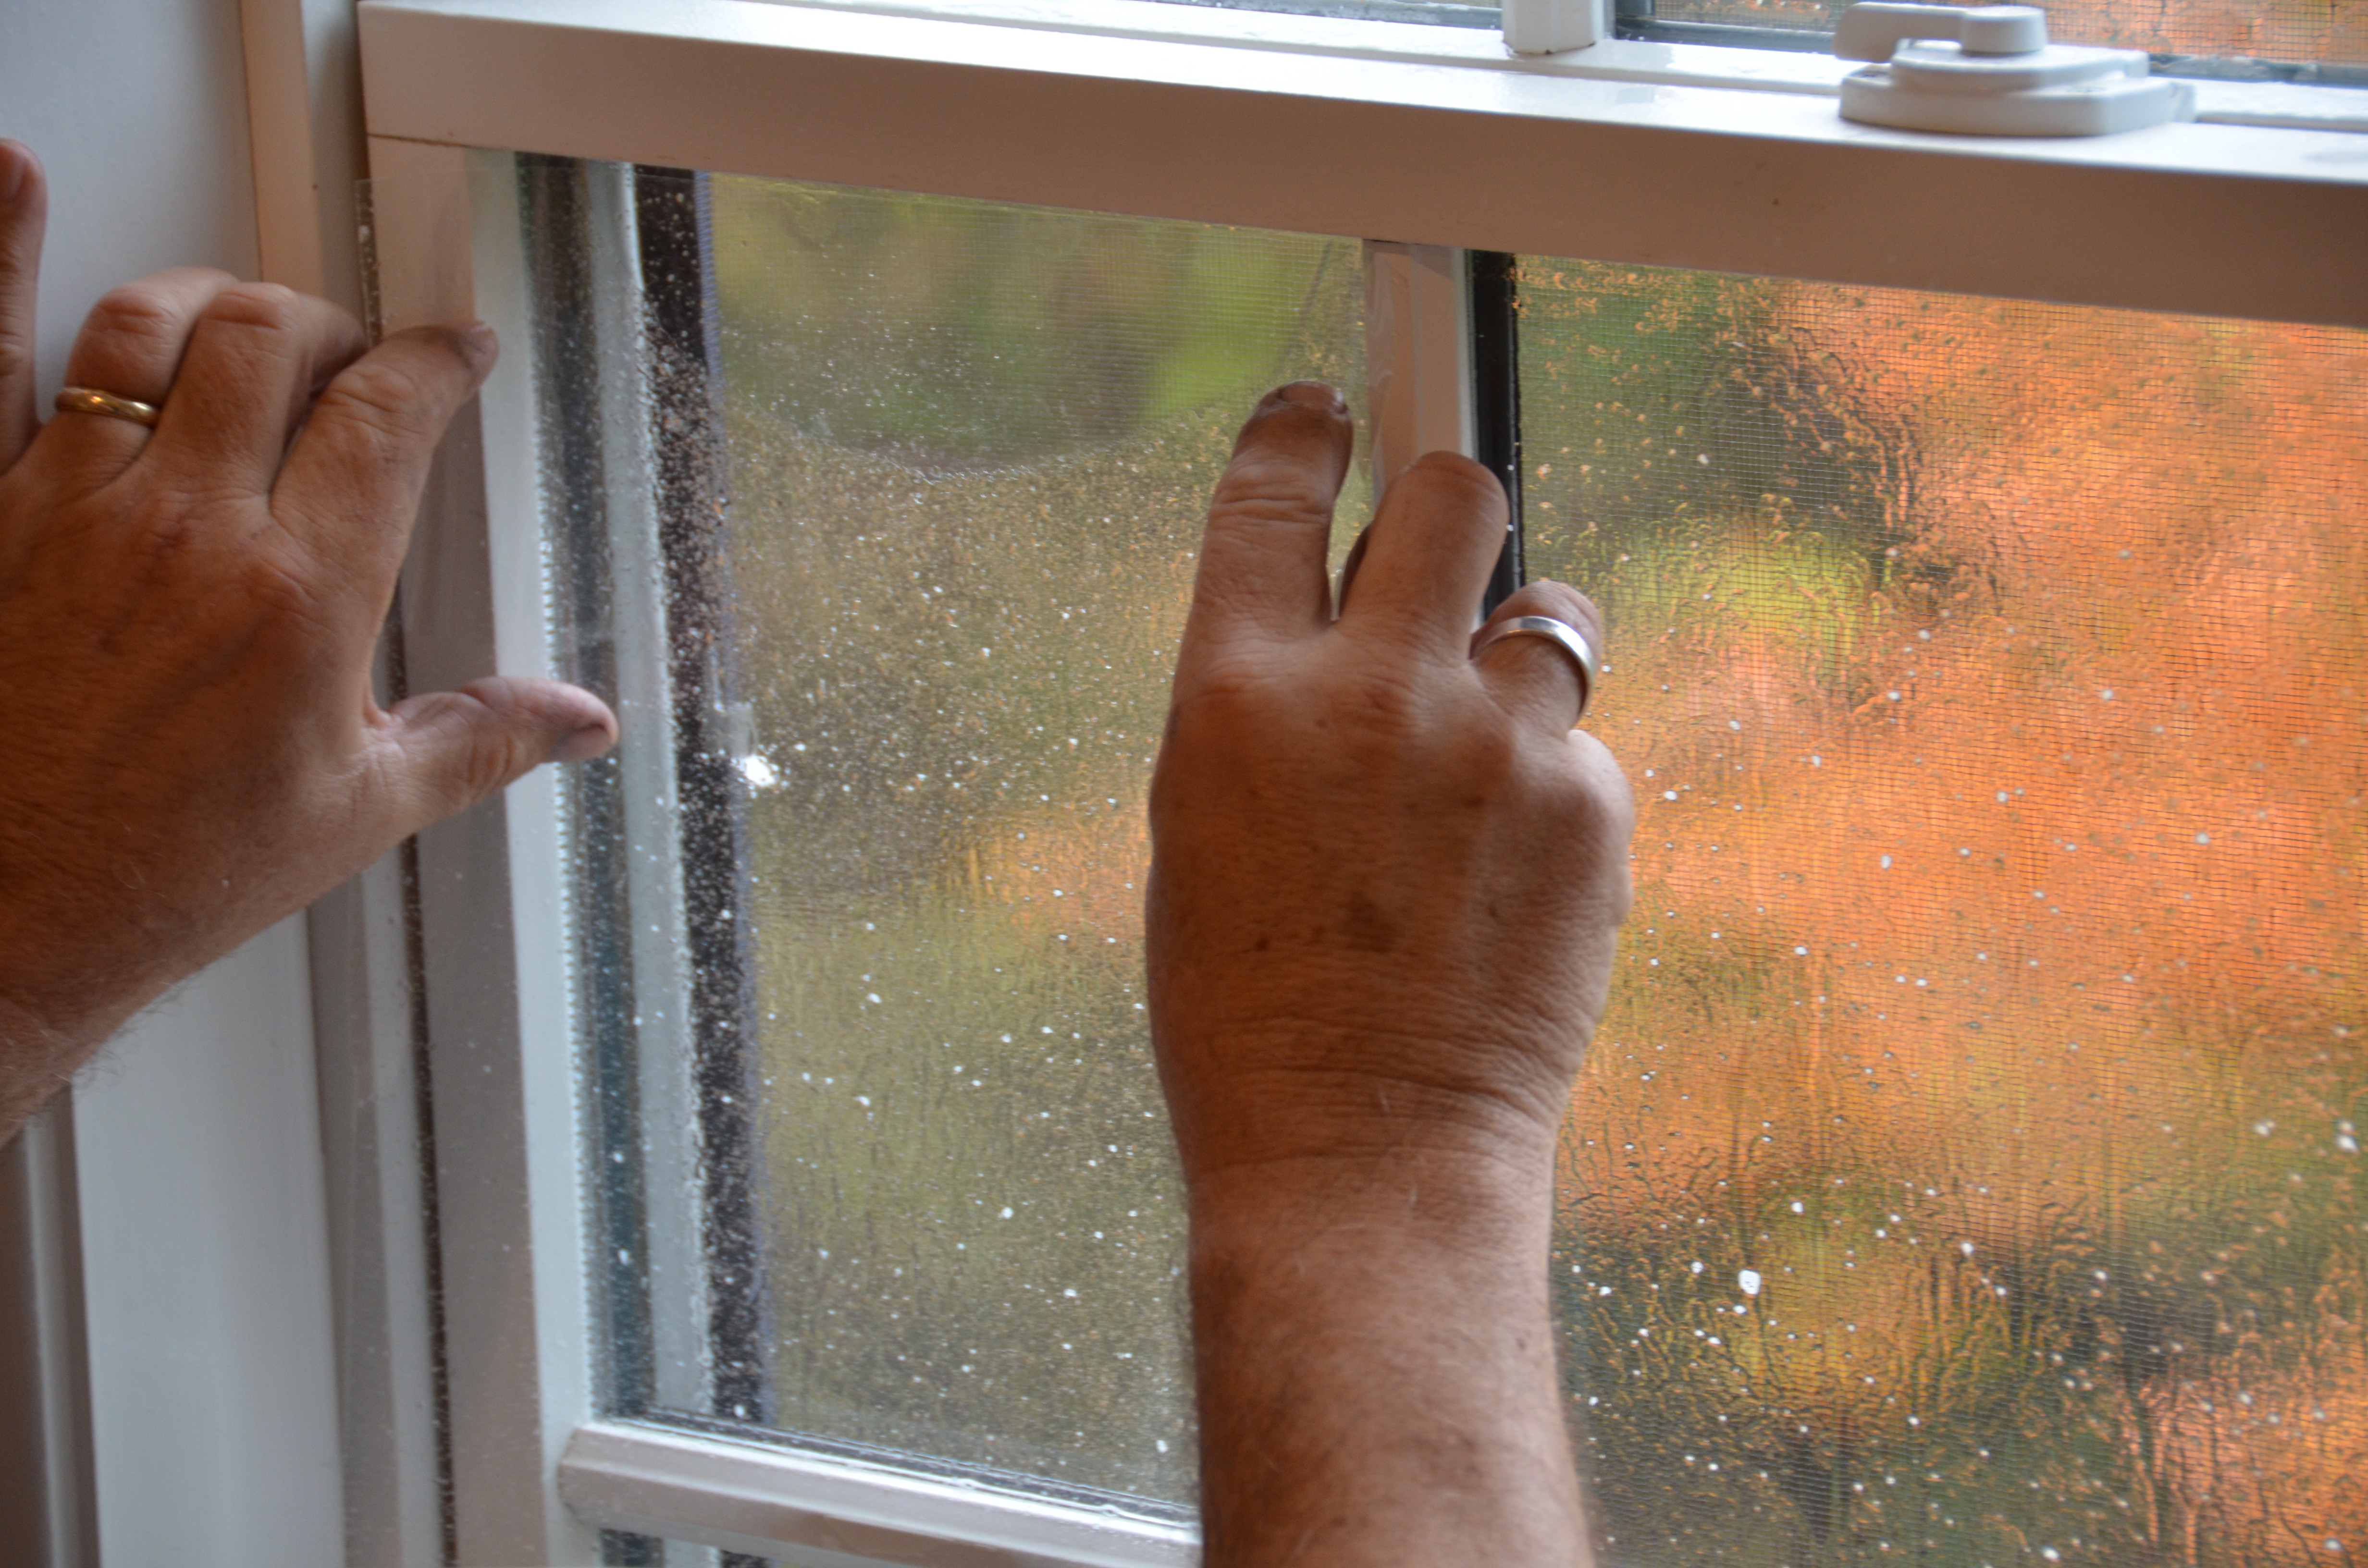 View topic bathroom windows exposed best solution for privacy - Window Safety Film